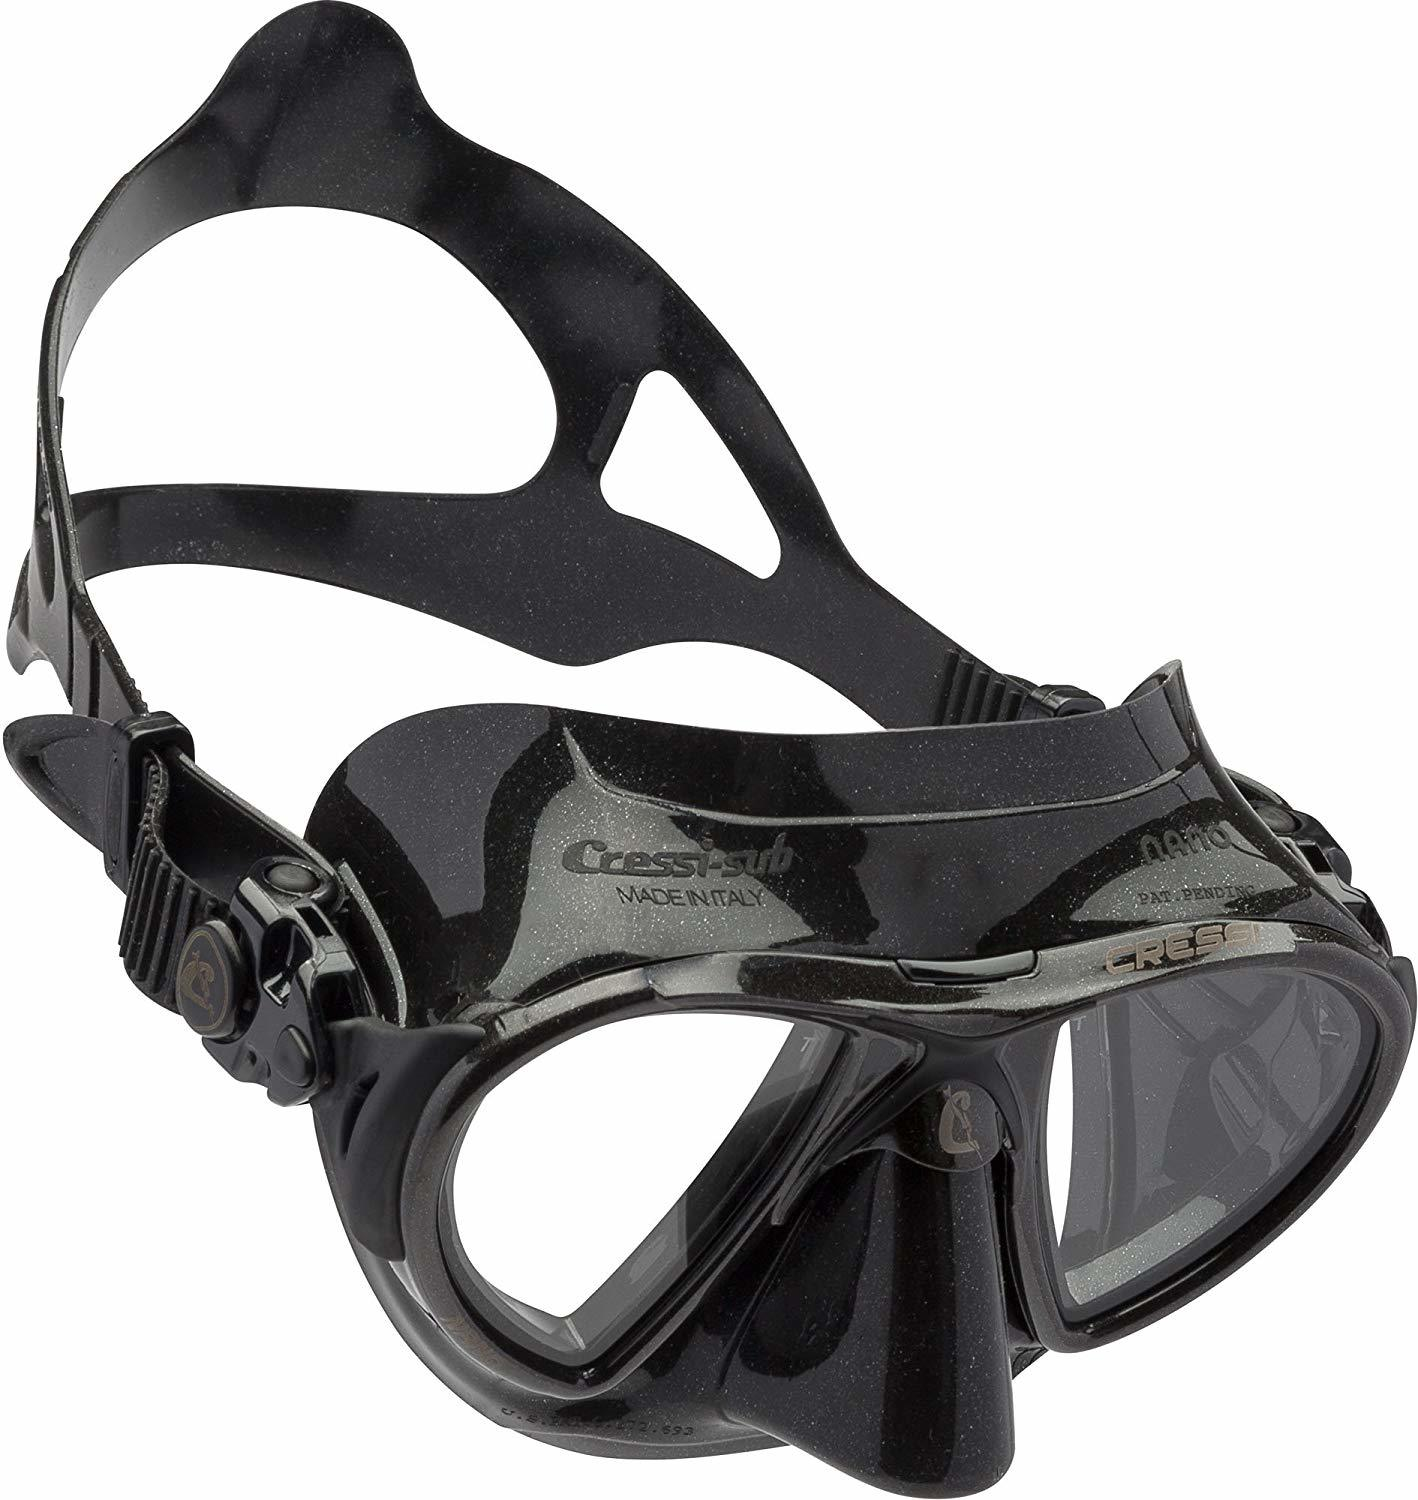 best spearfishing mask cressi nano